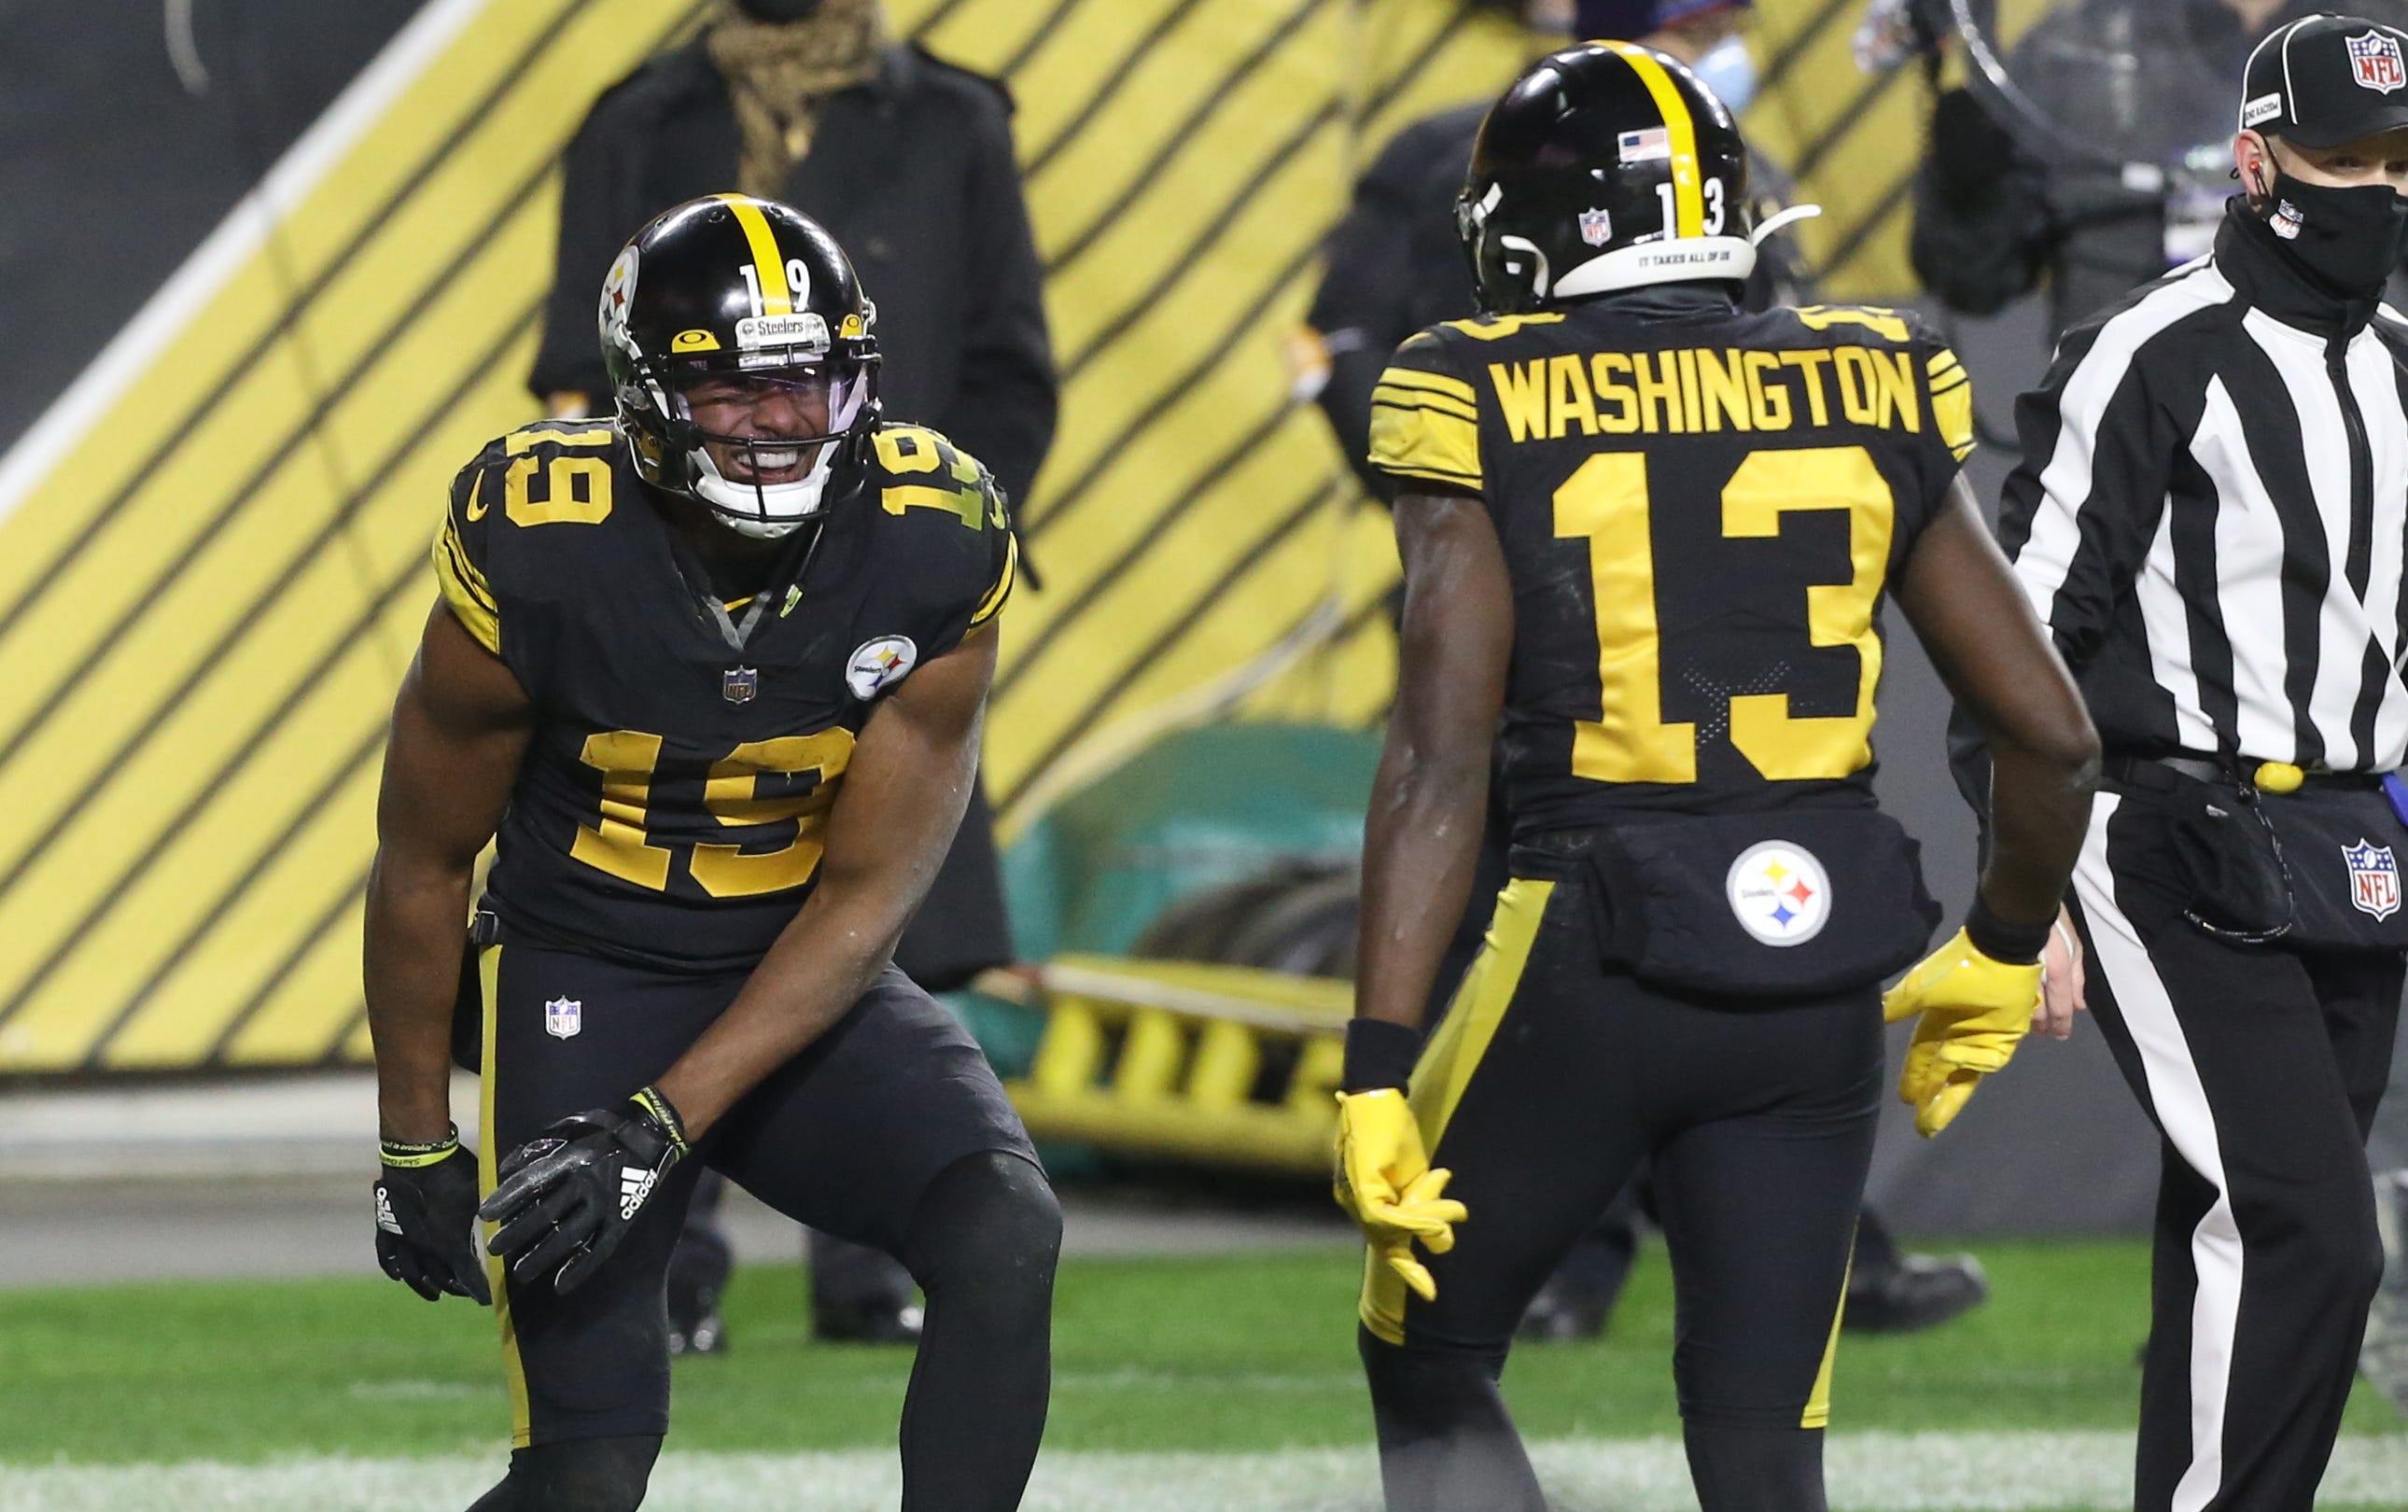 Winners and losers from Steelers  19-14 victory over Ravens in rare NFL Wednesday game